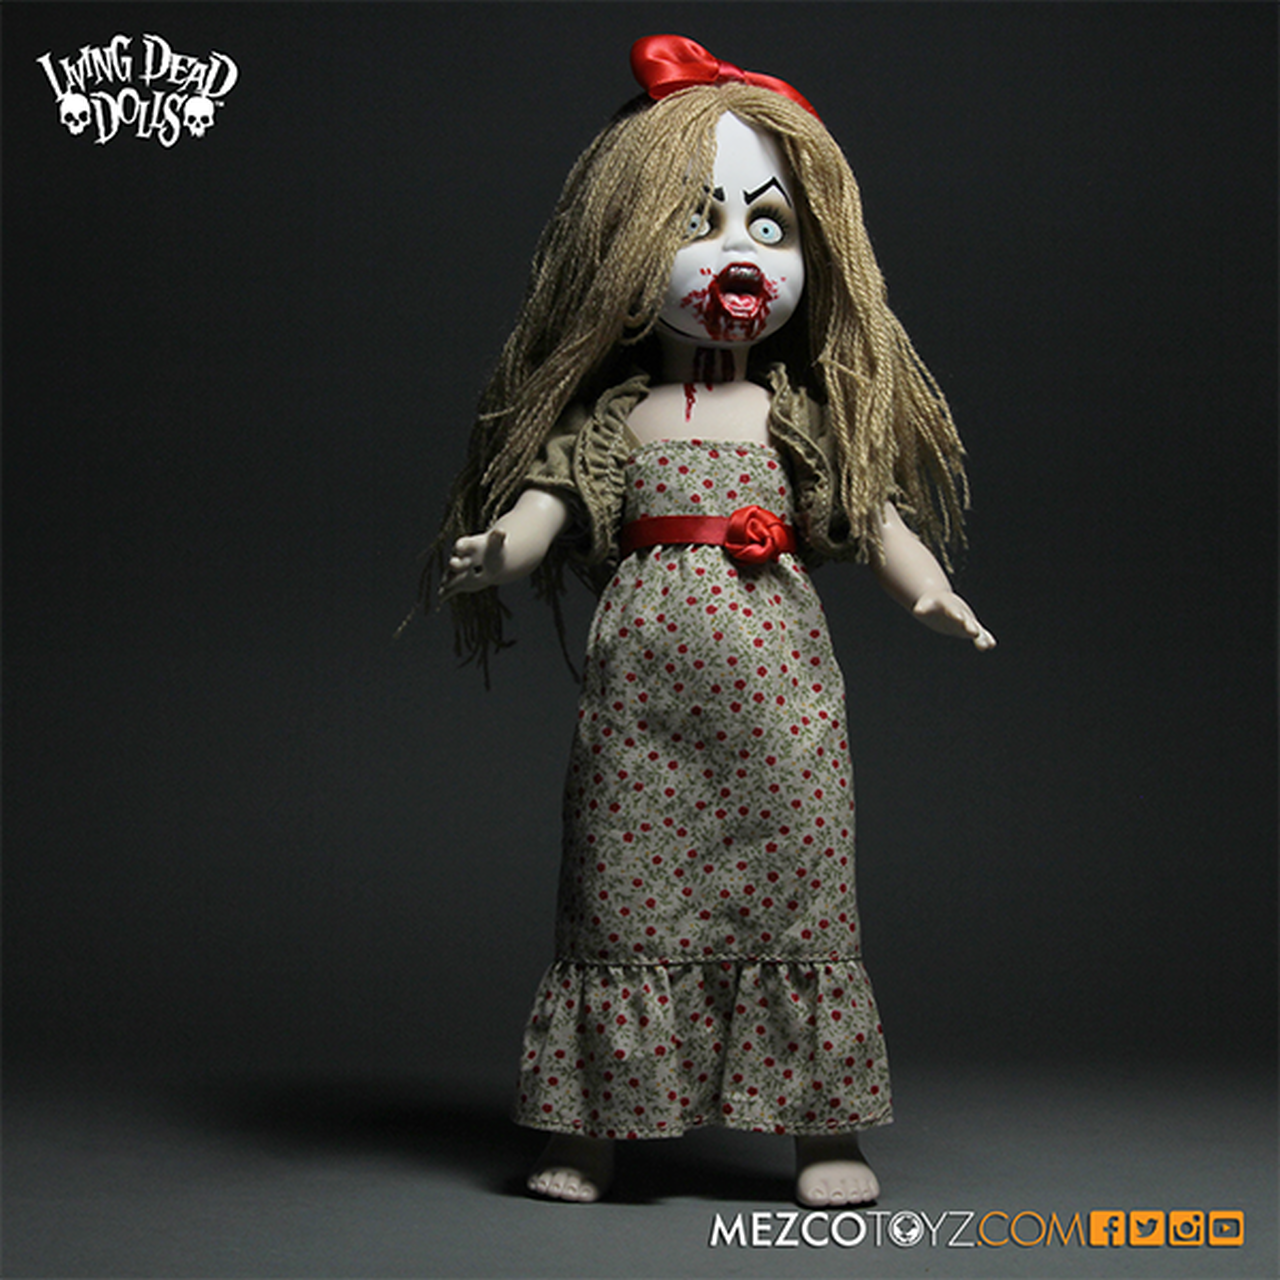 Lucy the Geek Living Dead Dolls Series 30